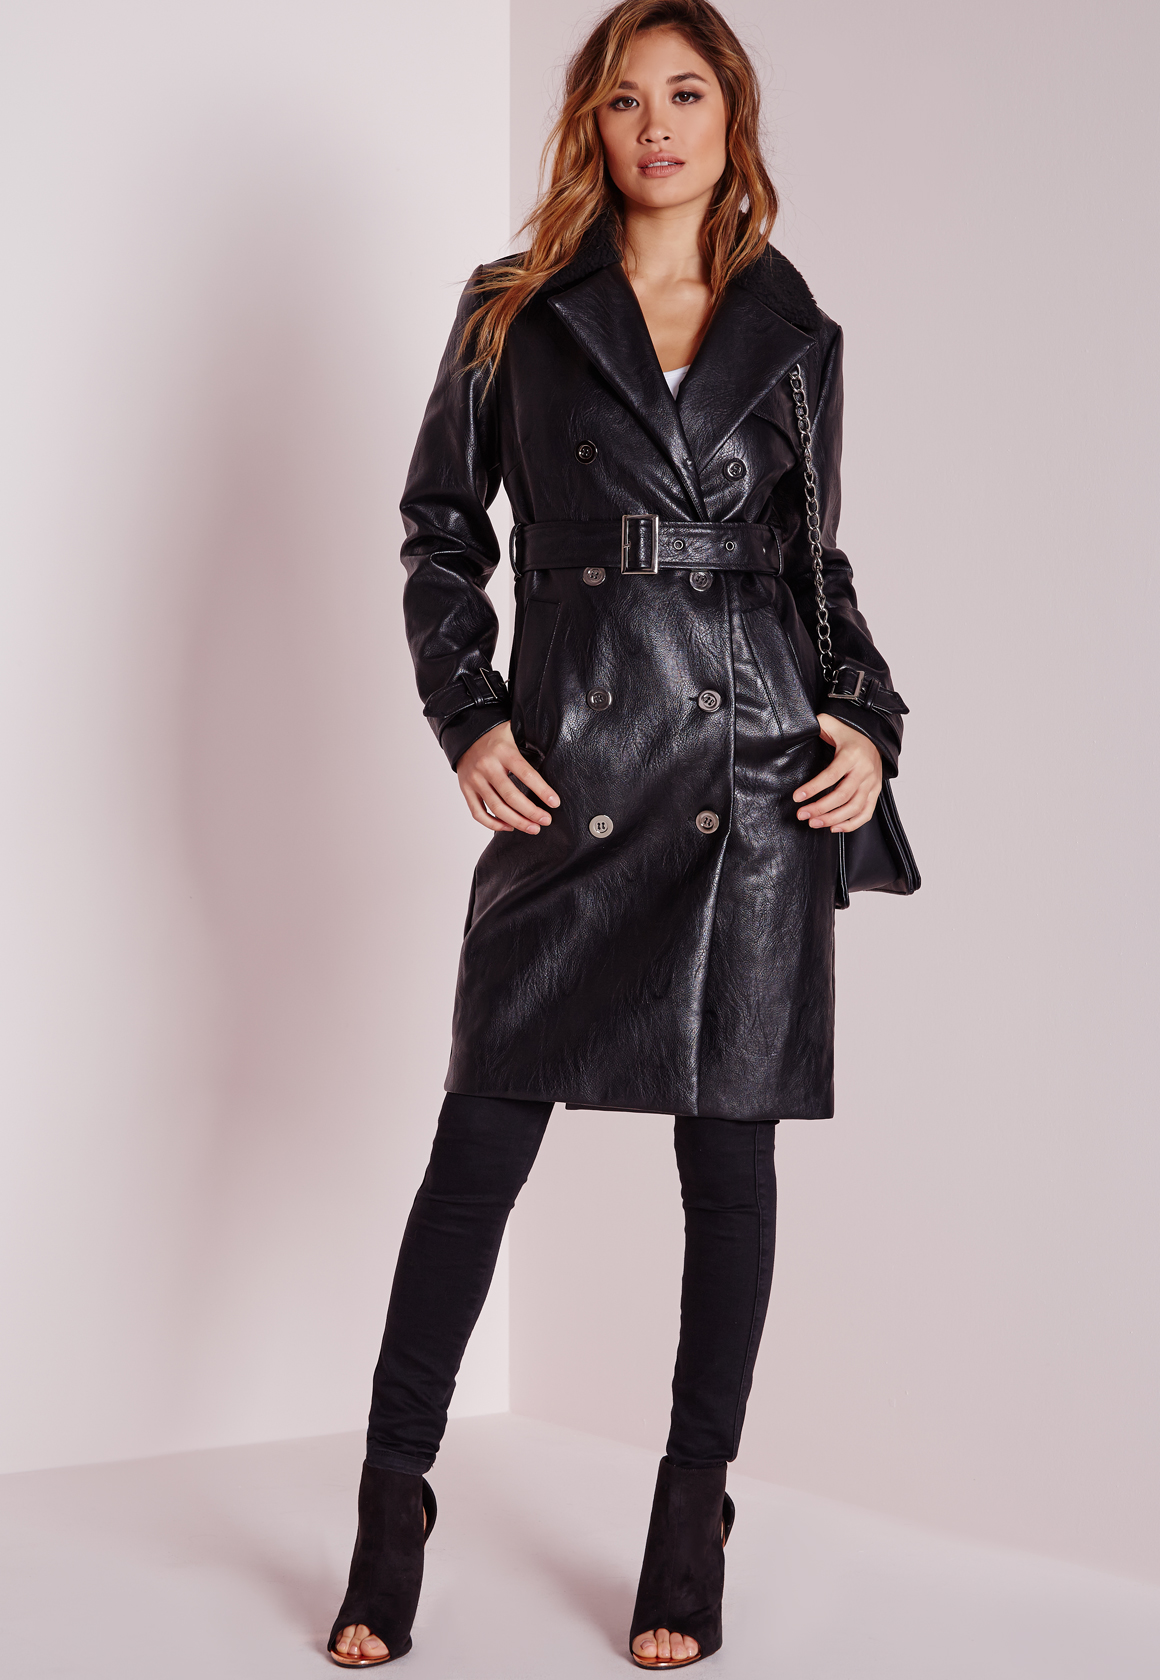 Buy Cheap Leather Trench Coat Compare Products Prices